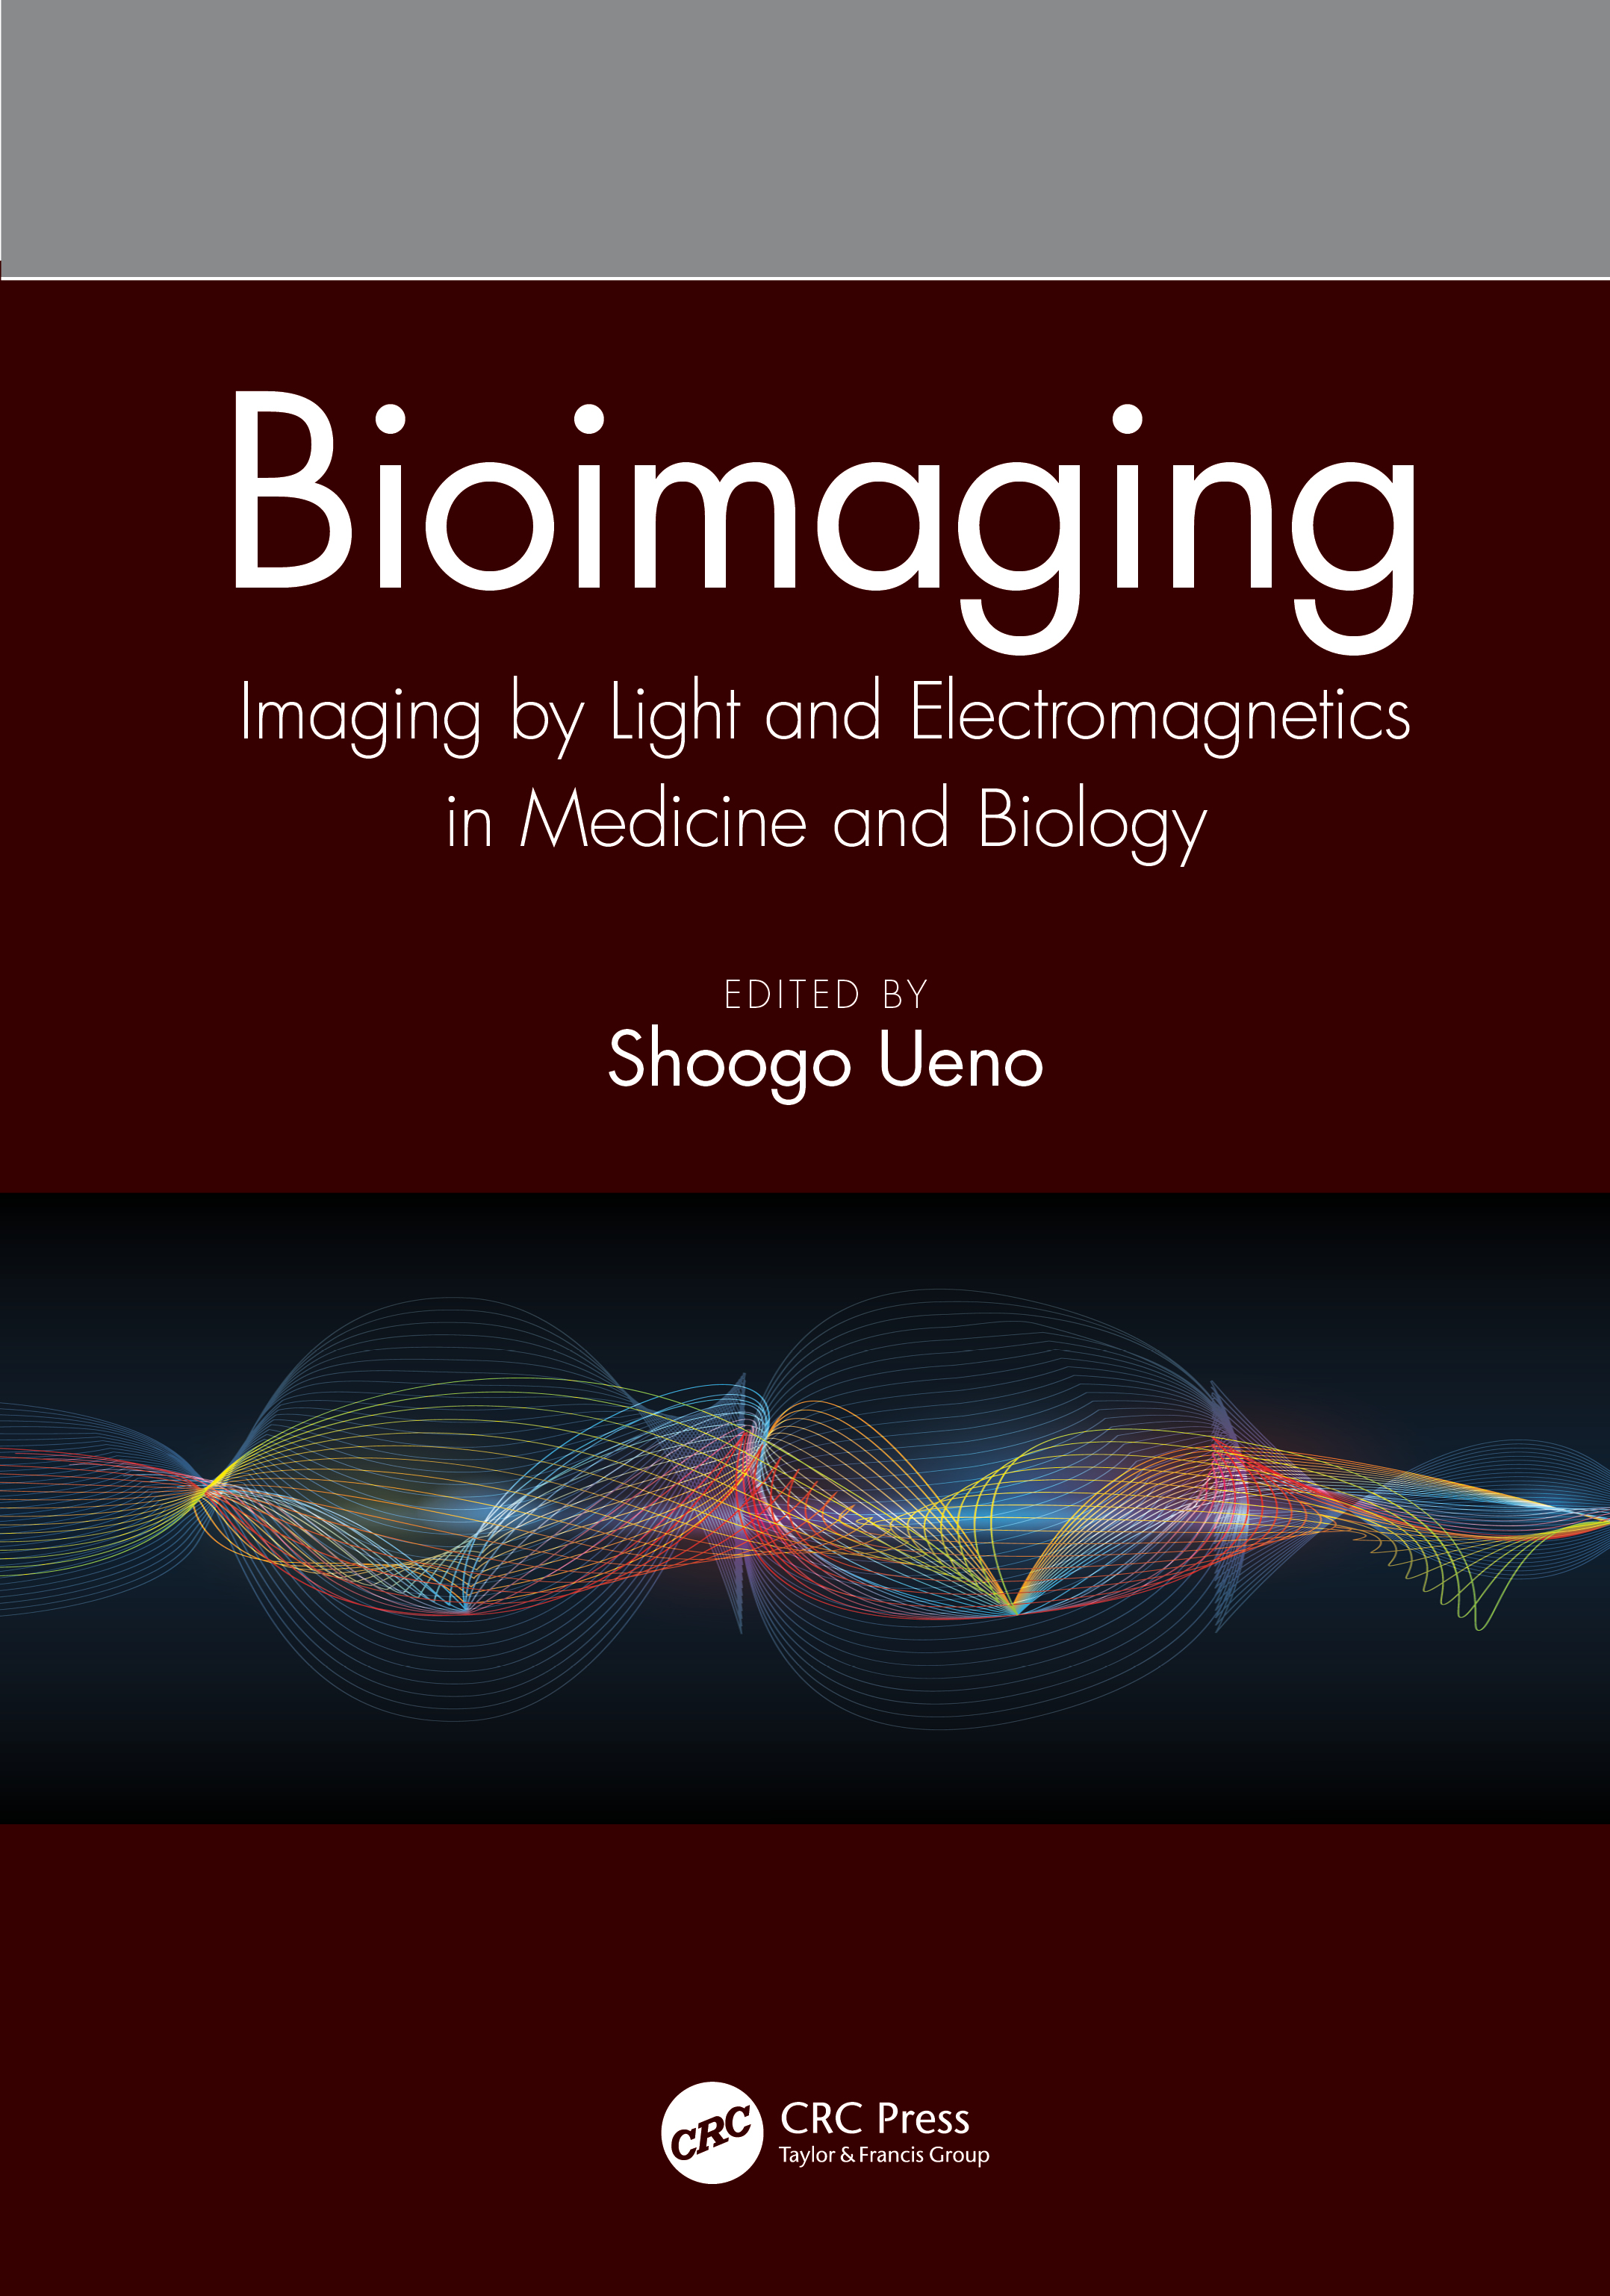 Bioimaging: Imaging by Light and Electromagnetics in Medicine and Biology book cover